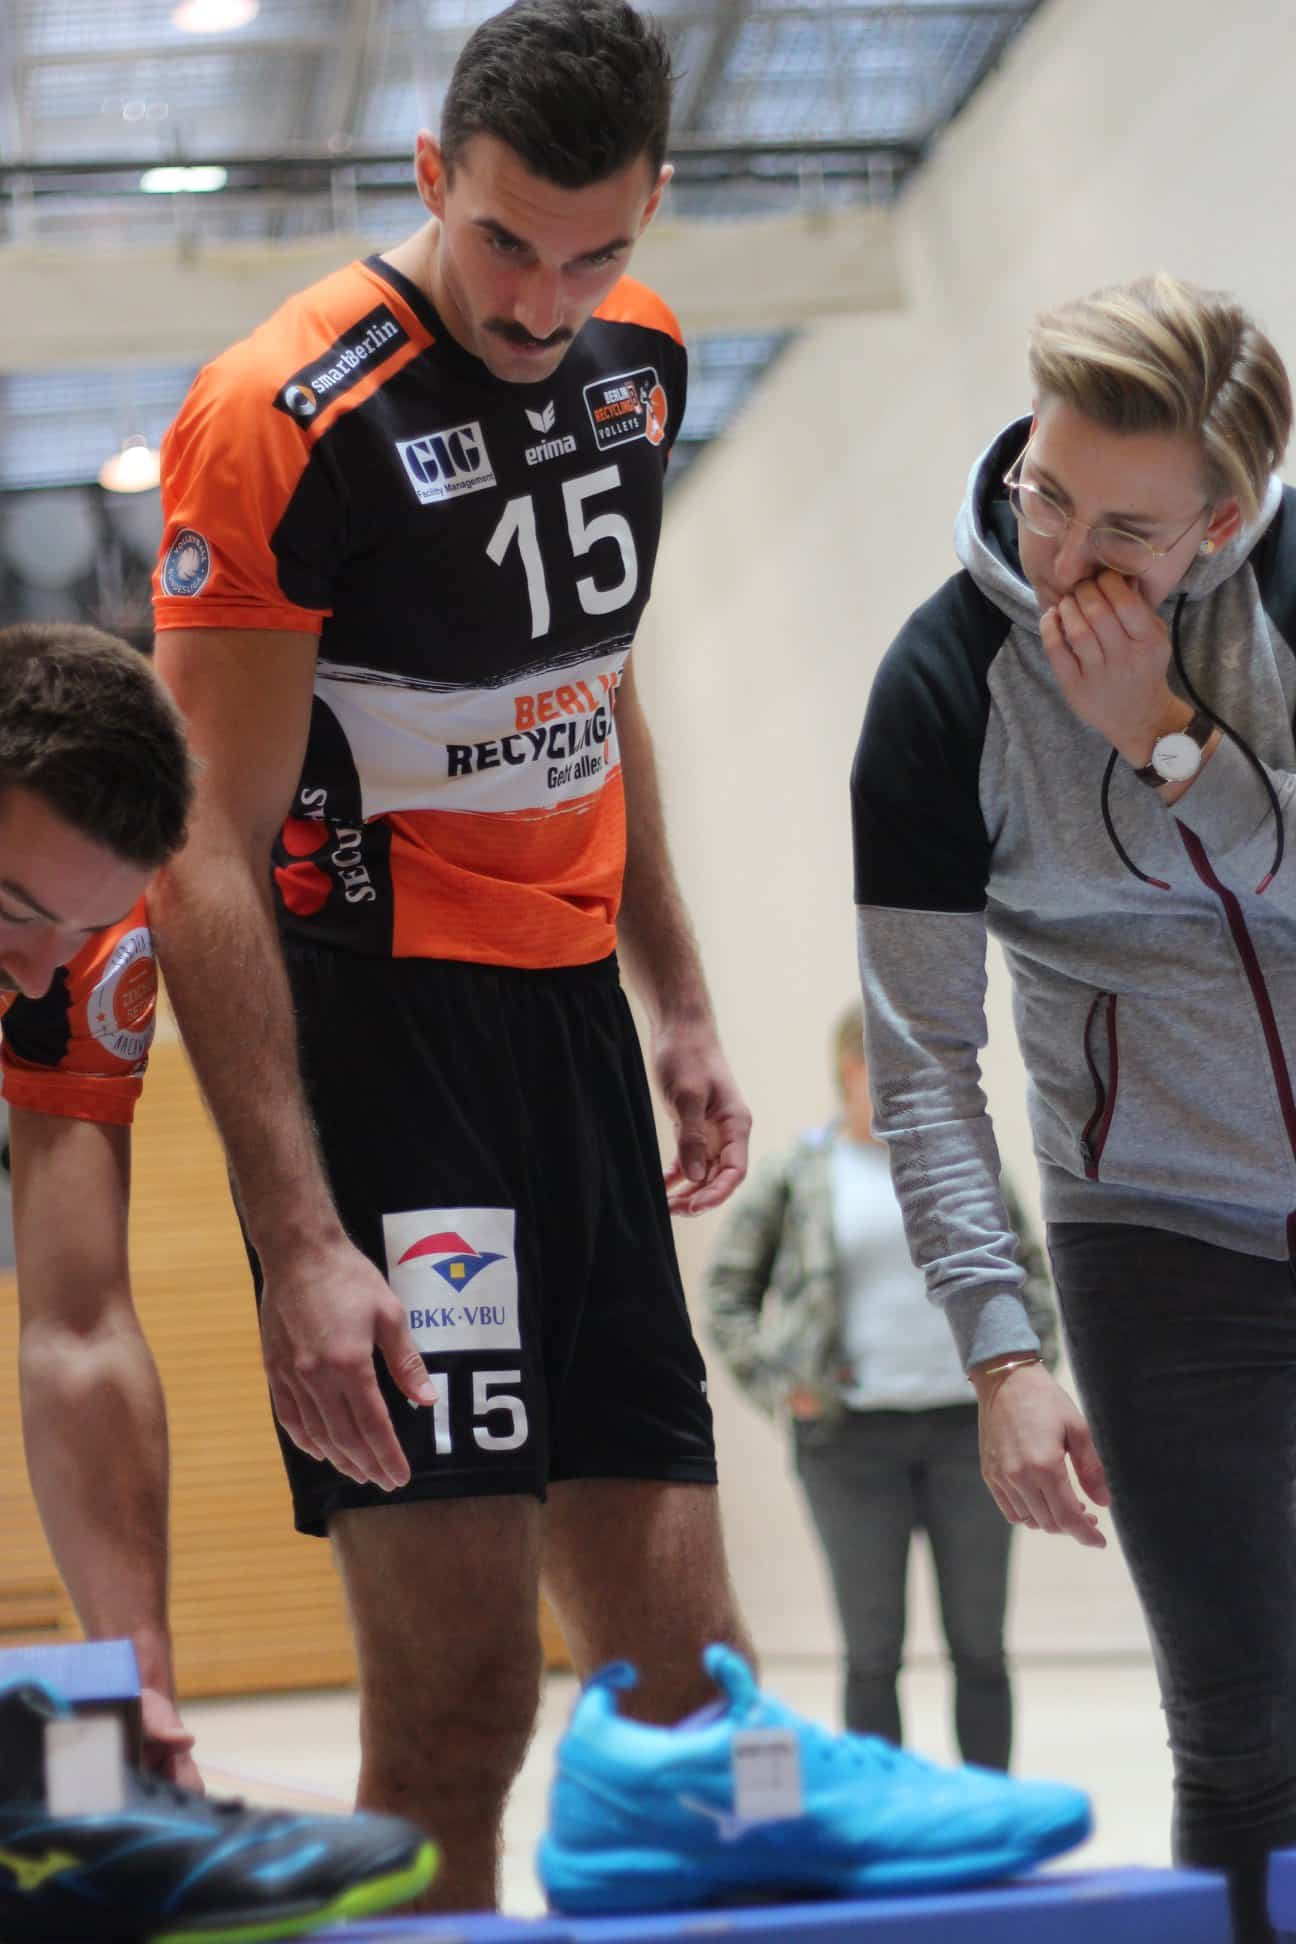 nouveau-maillot-volley-berlin-recycling-volleys-erima-2018-2019-5